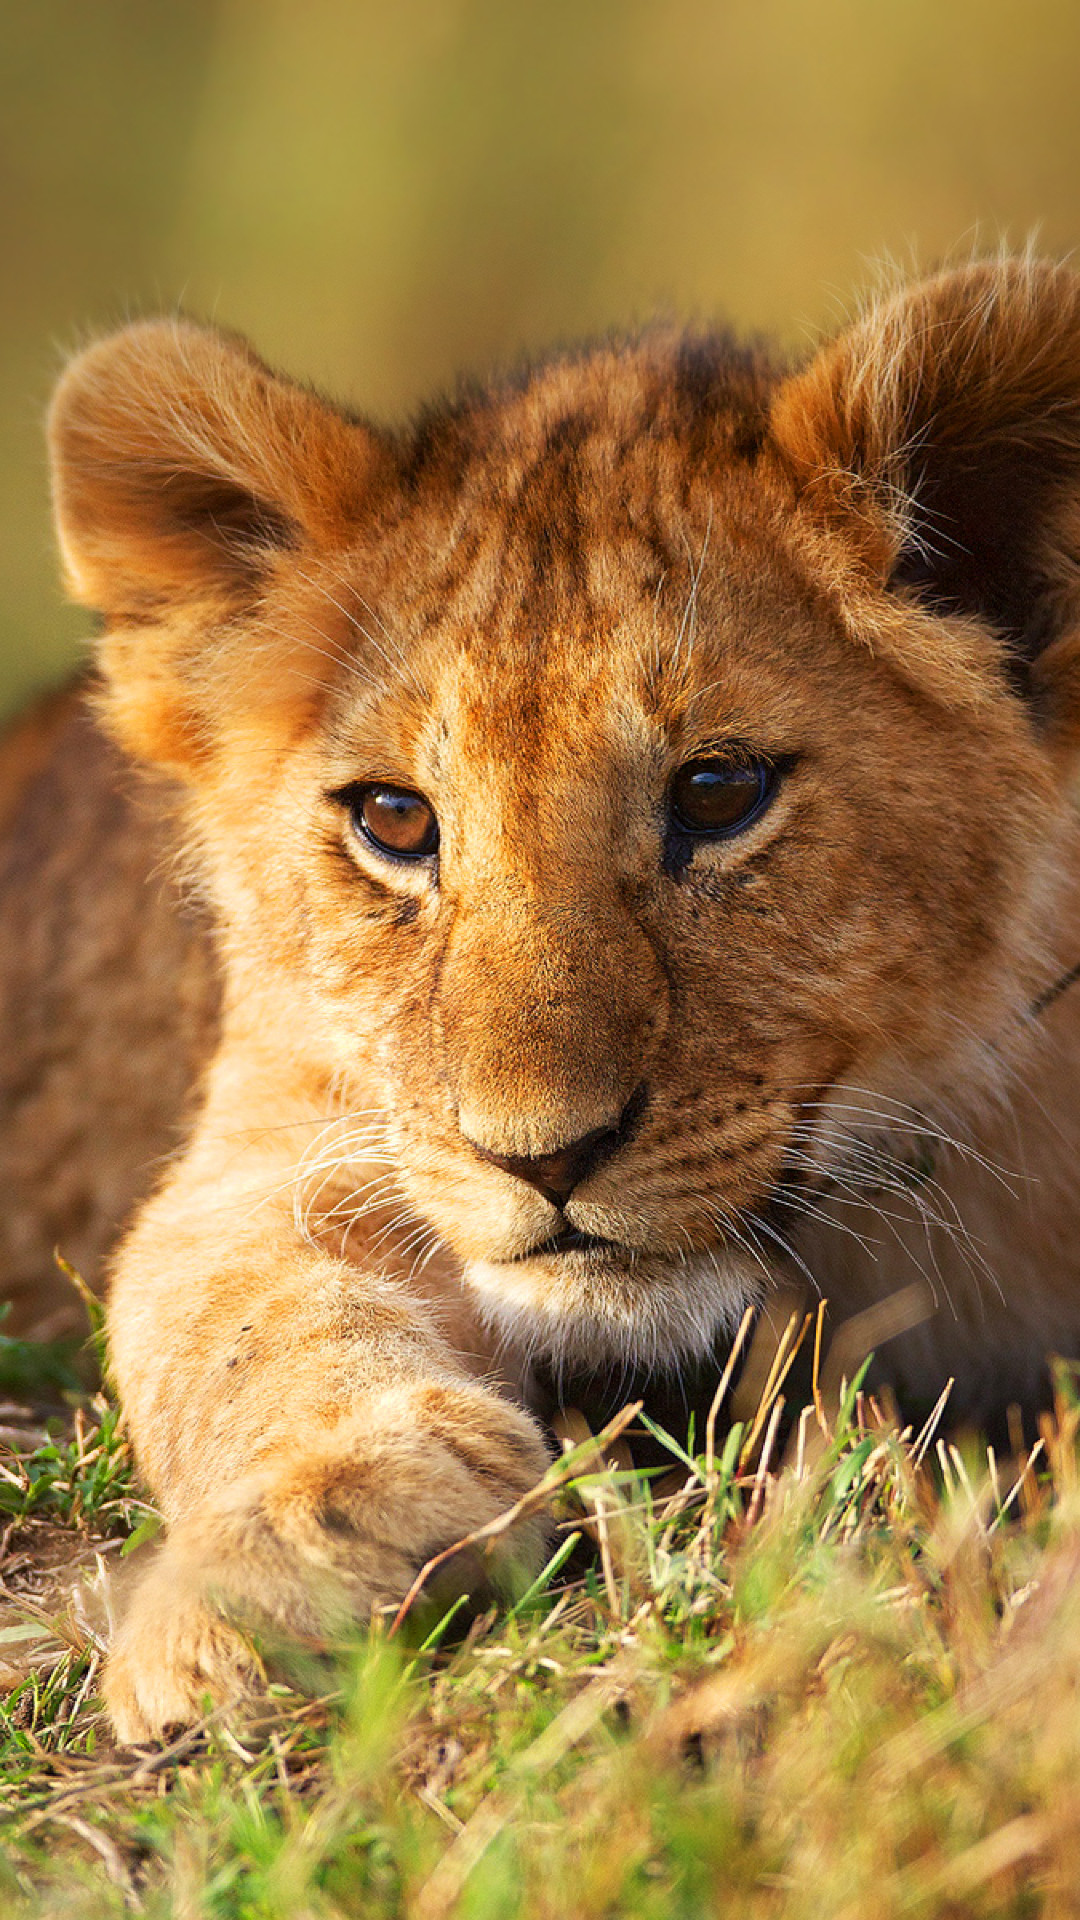 Cute Animal Wallpapers Free Download Lion Cub Wallpaper 74 Images